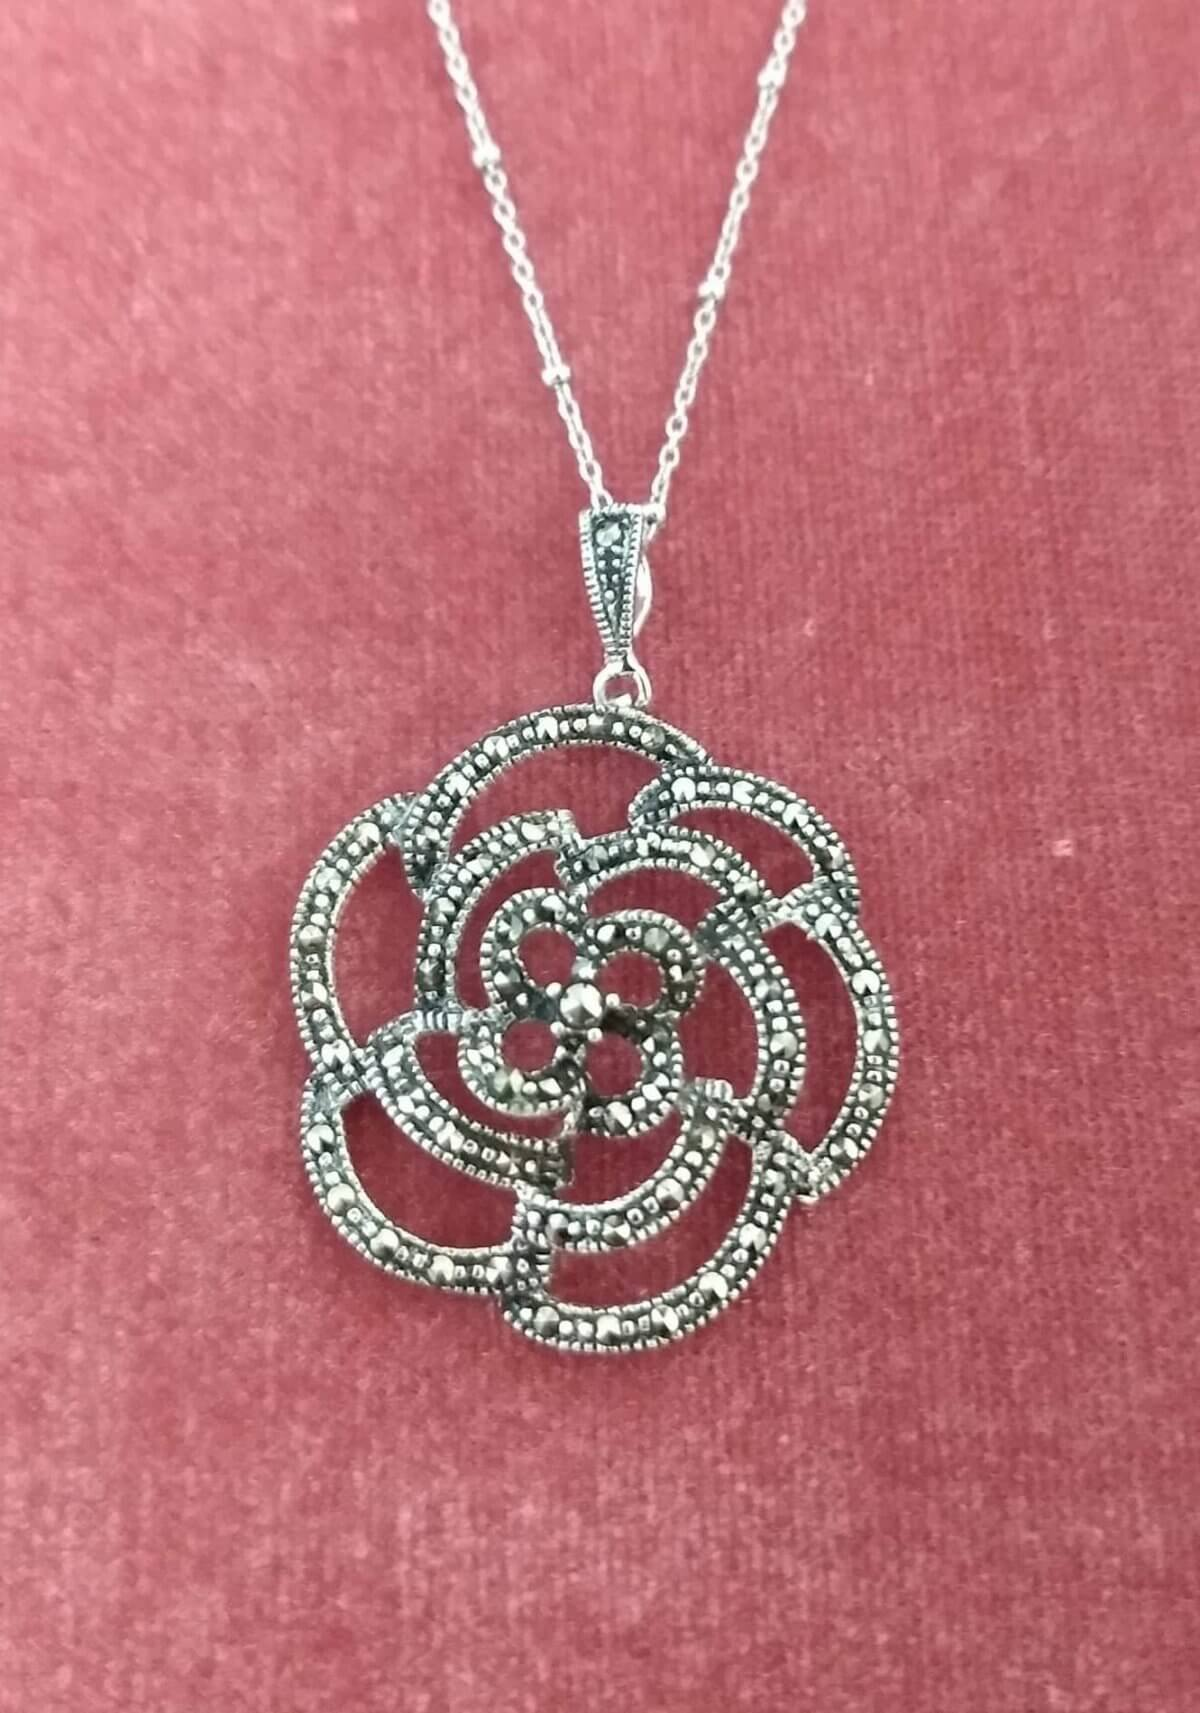 https://lorirae.com/wp-content/uploads/2020/04/Sterling-Silver-large-marcasite-Rose-1-scaled-e1587680295916.jpg